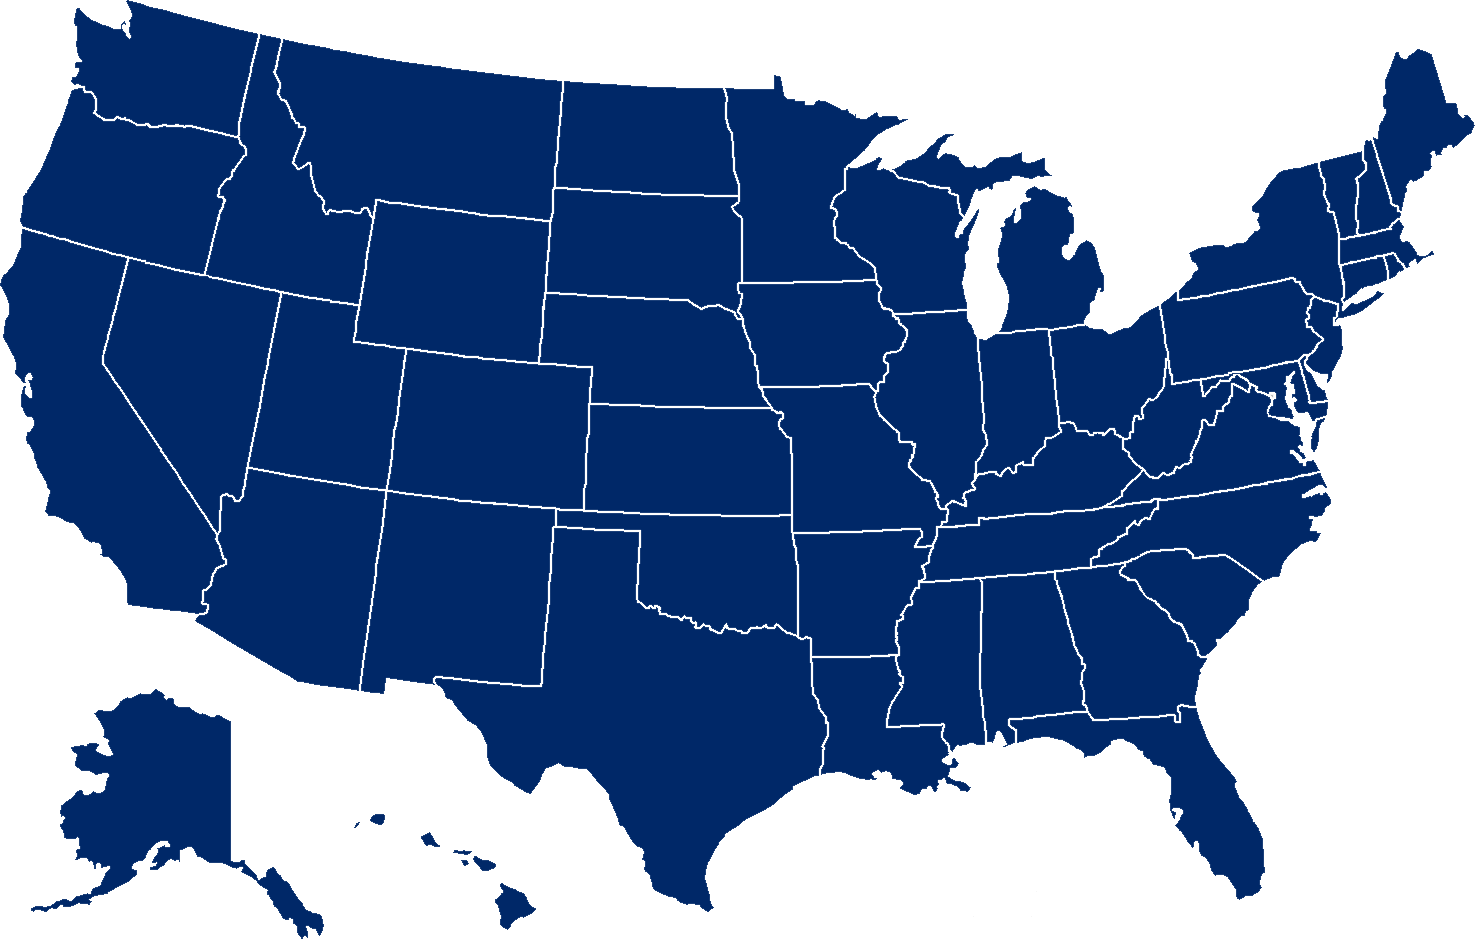 Usa Map Png - Blue Map Of The Us Clipart (1475x939), Png Download